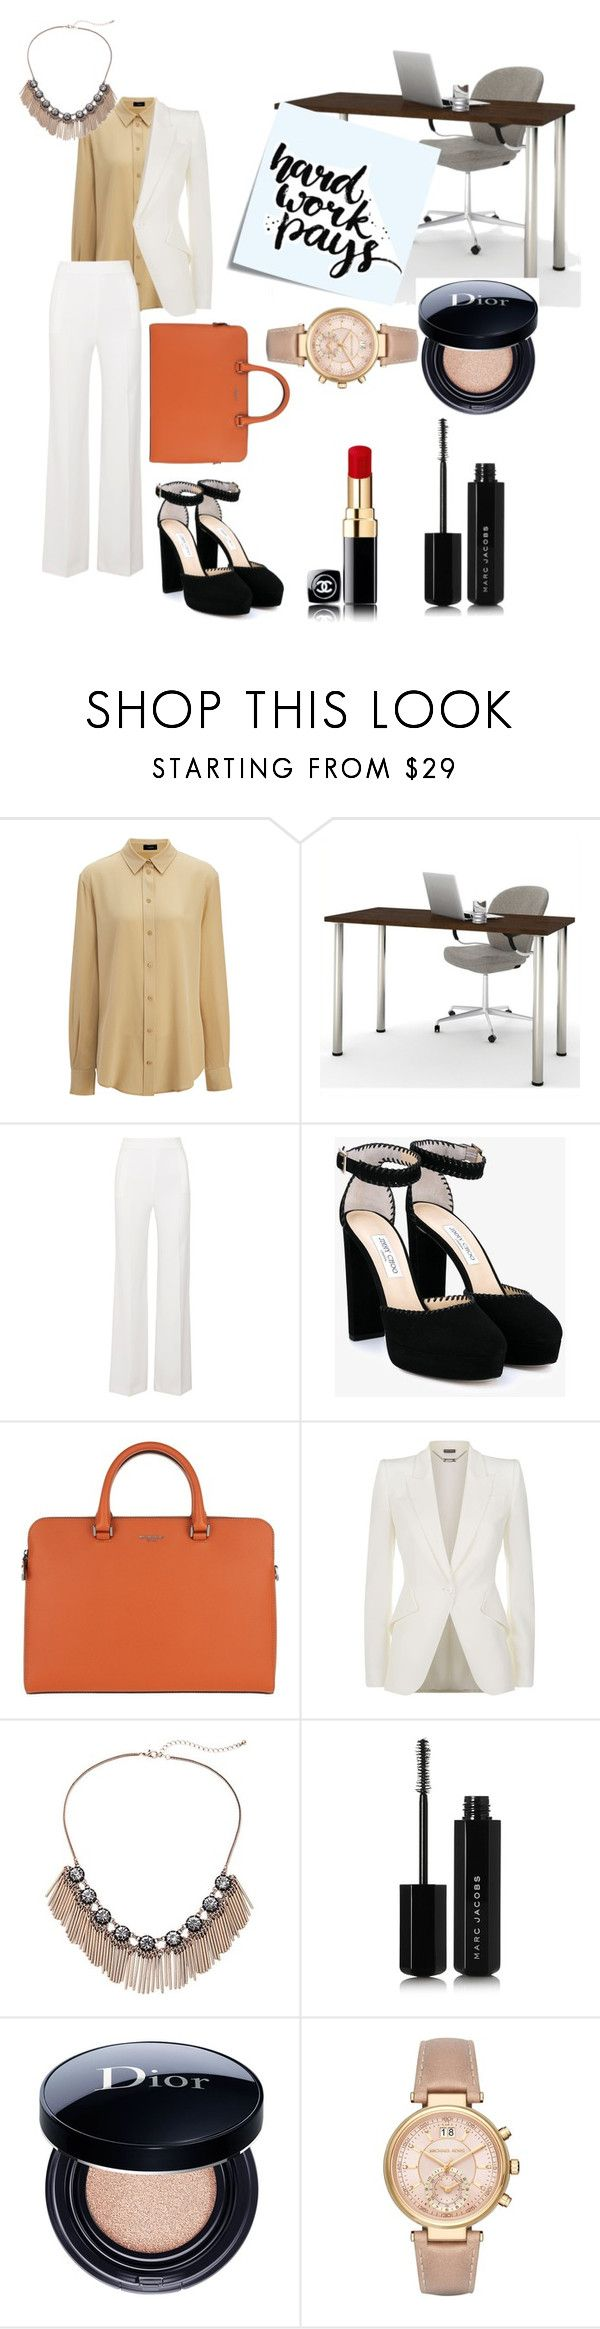 it's time to work by feliciamia on Polyvore featuring Joseph, Alexander McQueen, Roland Mouret, Jimmy Choo, MICHAEL Michael Kors, Michael Kors, Christian Dior, Marc Jacobs, Bestar and Post-It